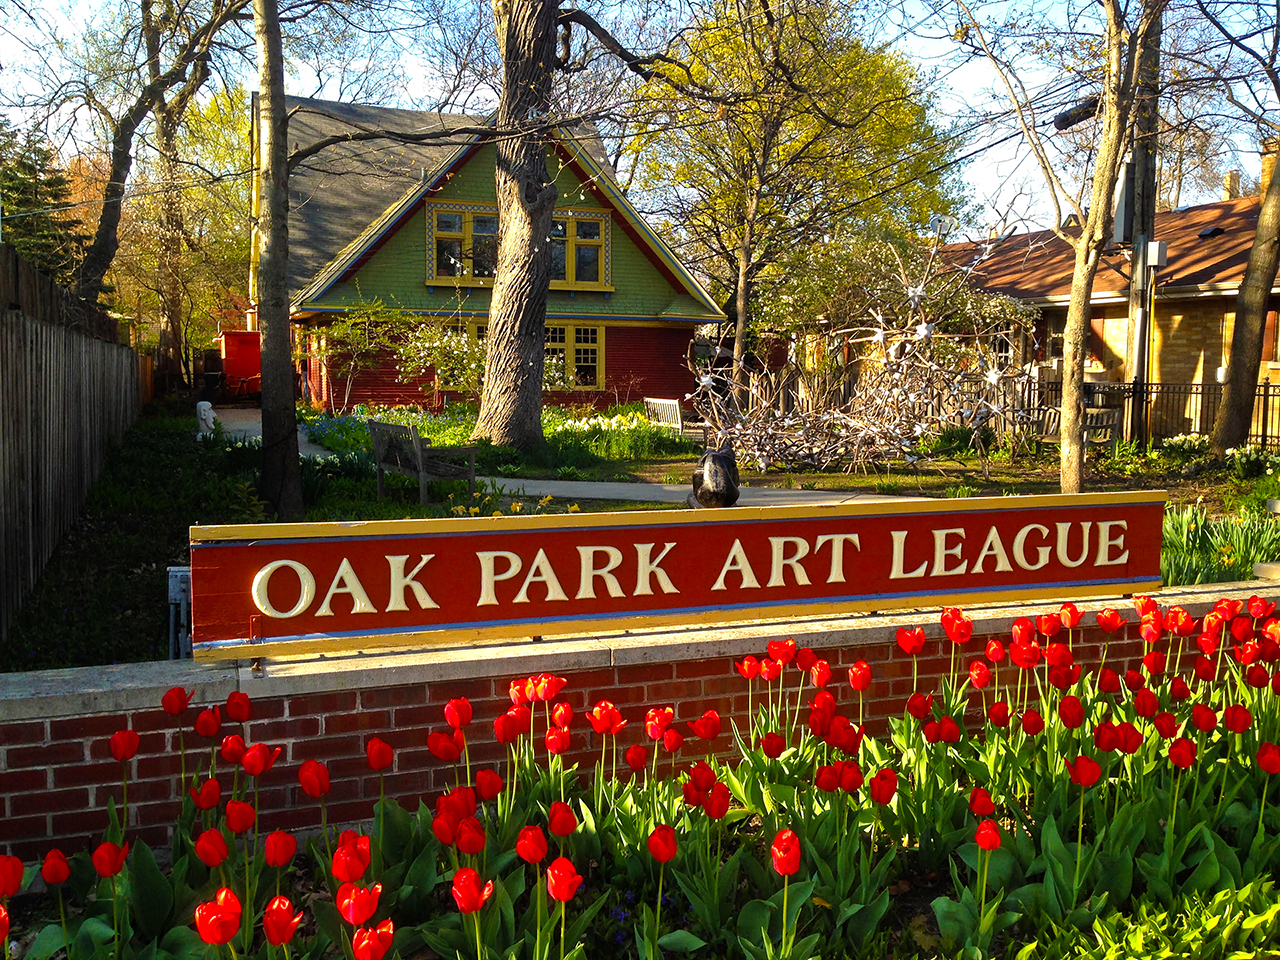 Oak Park Art League